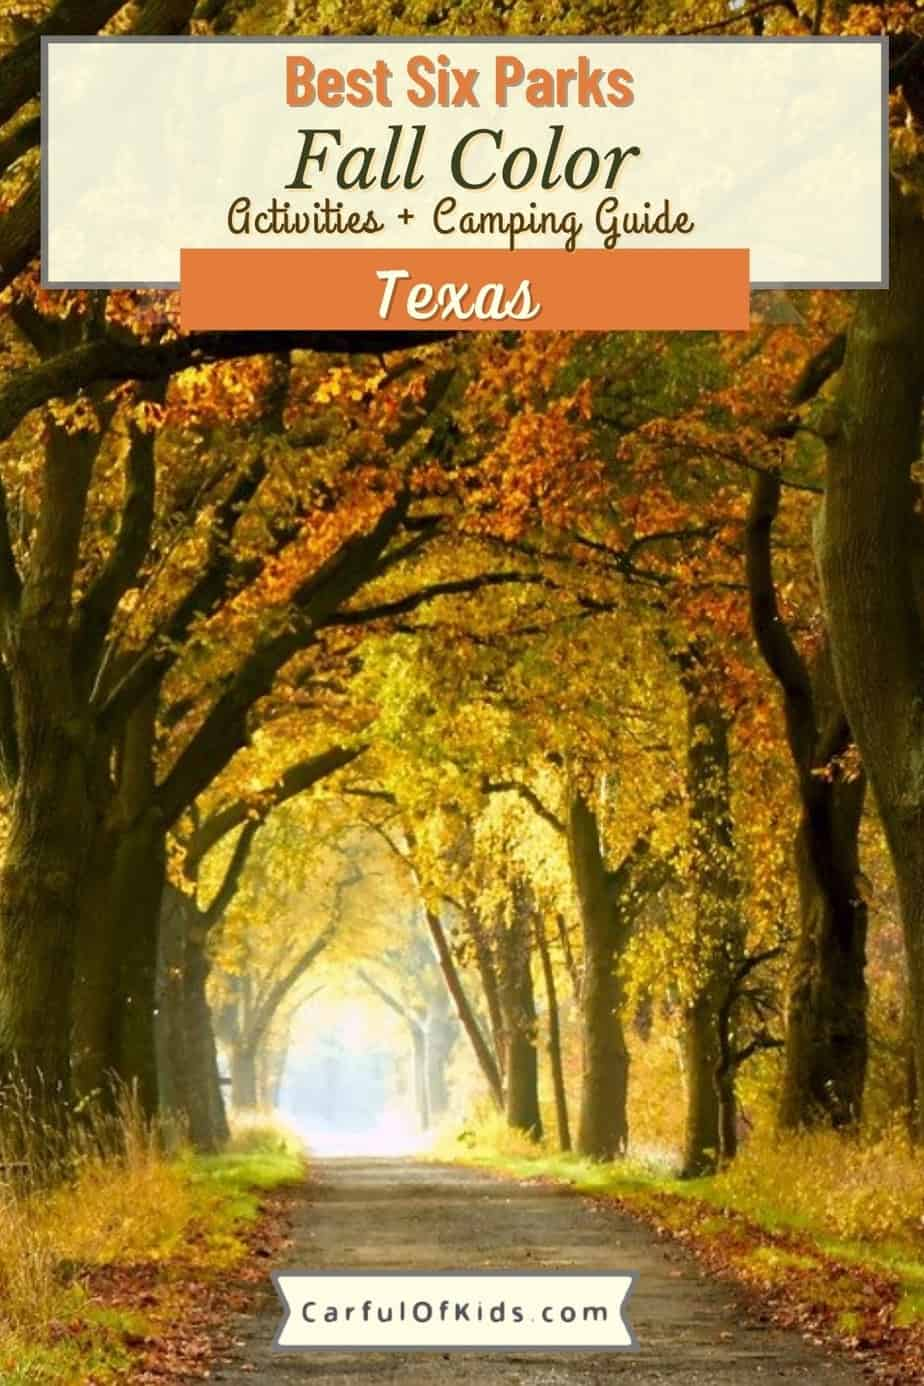 Fall is not lost in Texas. Find maples, sweetgums and cypress in Texas Parks from state natural areas to national parks. See the yellows, oranges and reds from mid October to late November. As a bonus many of the parks offer camping. Plan your Fall Color Trip in Texas with this handy guide. Best parks in Texas for fall color   When do the trees change in Texas #Texas #fallcolor